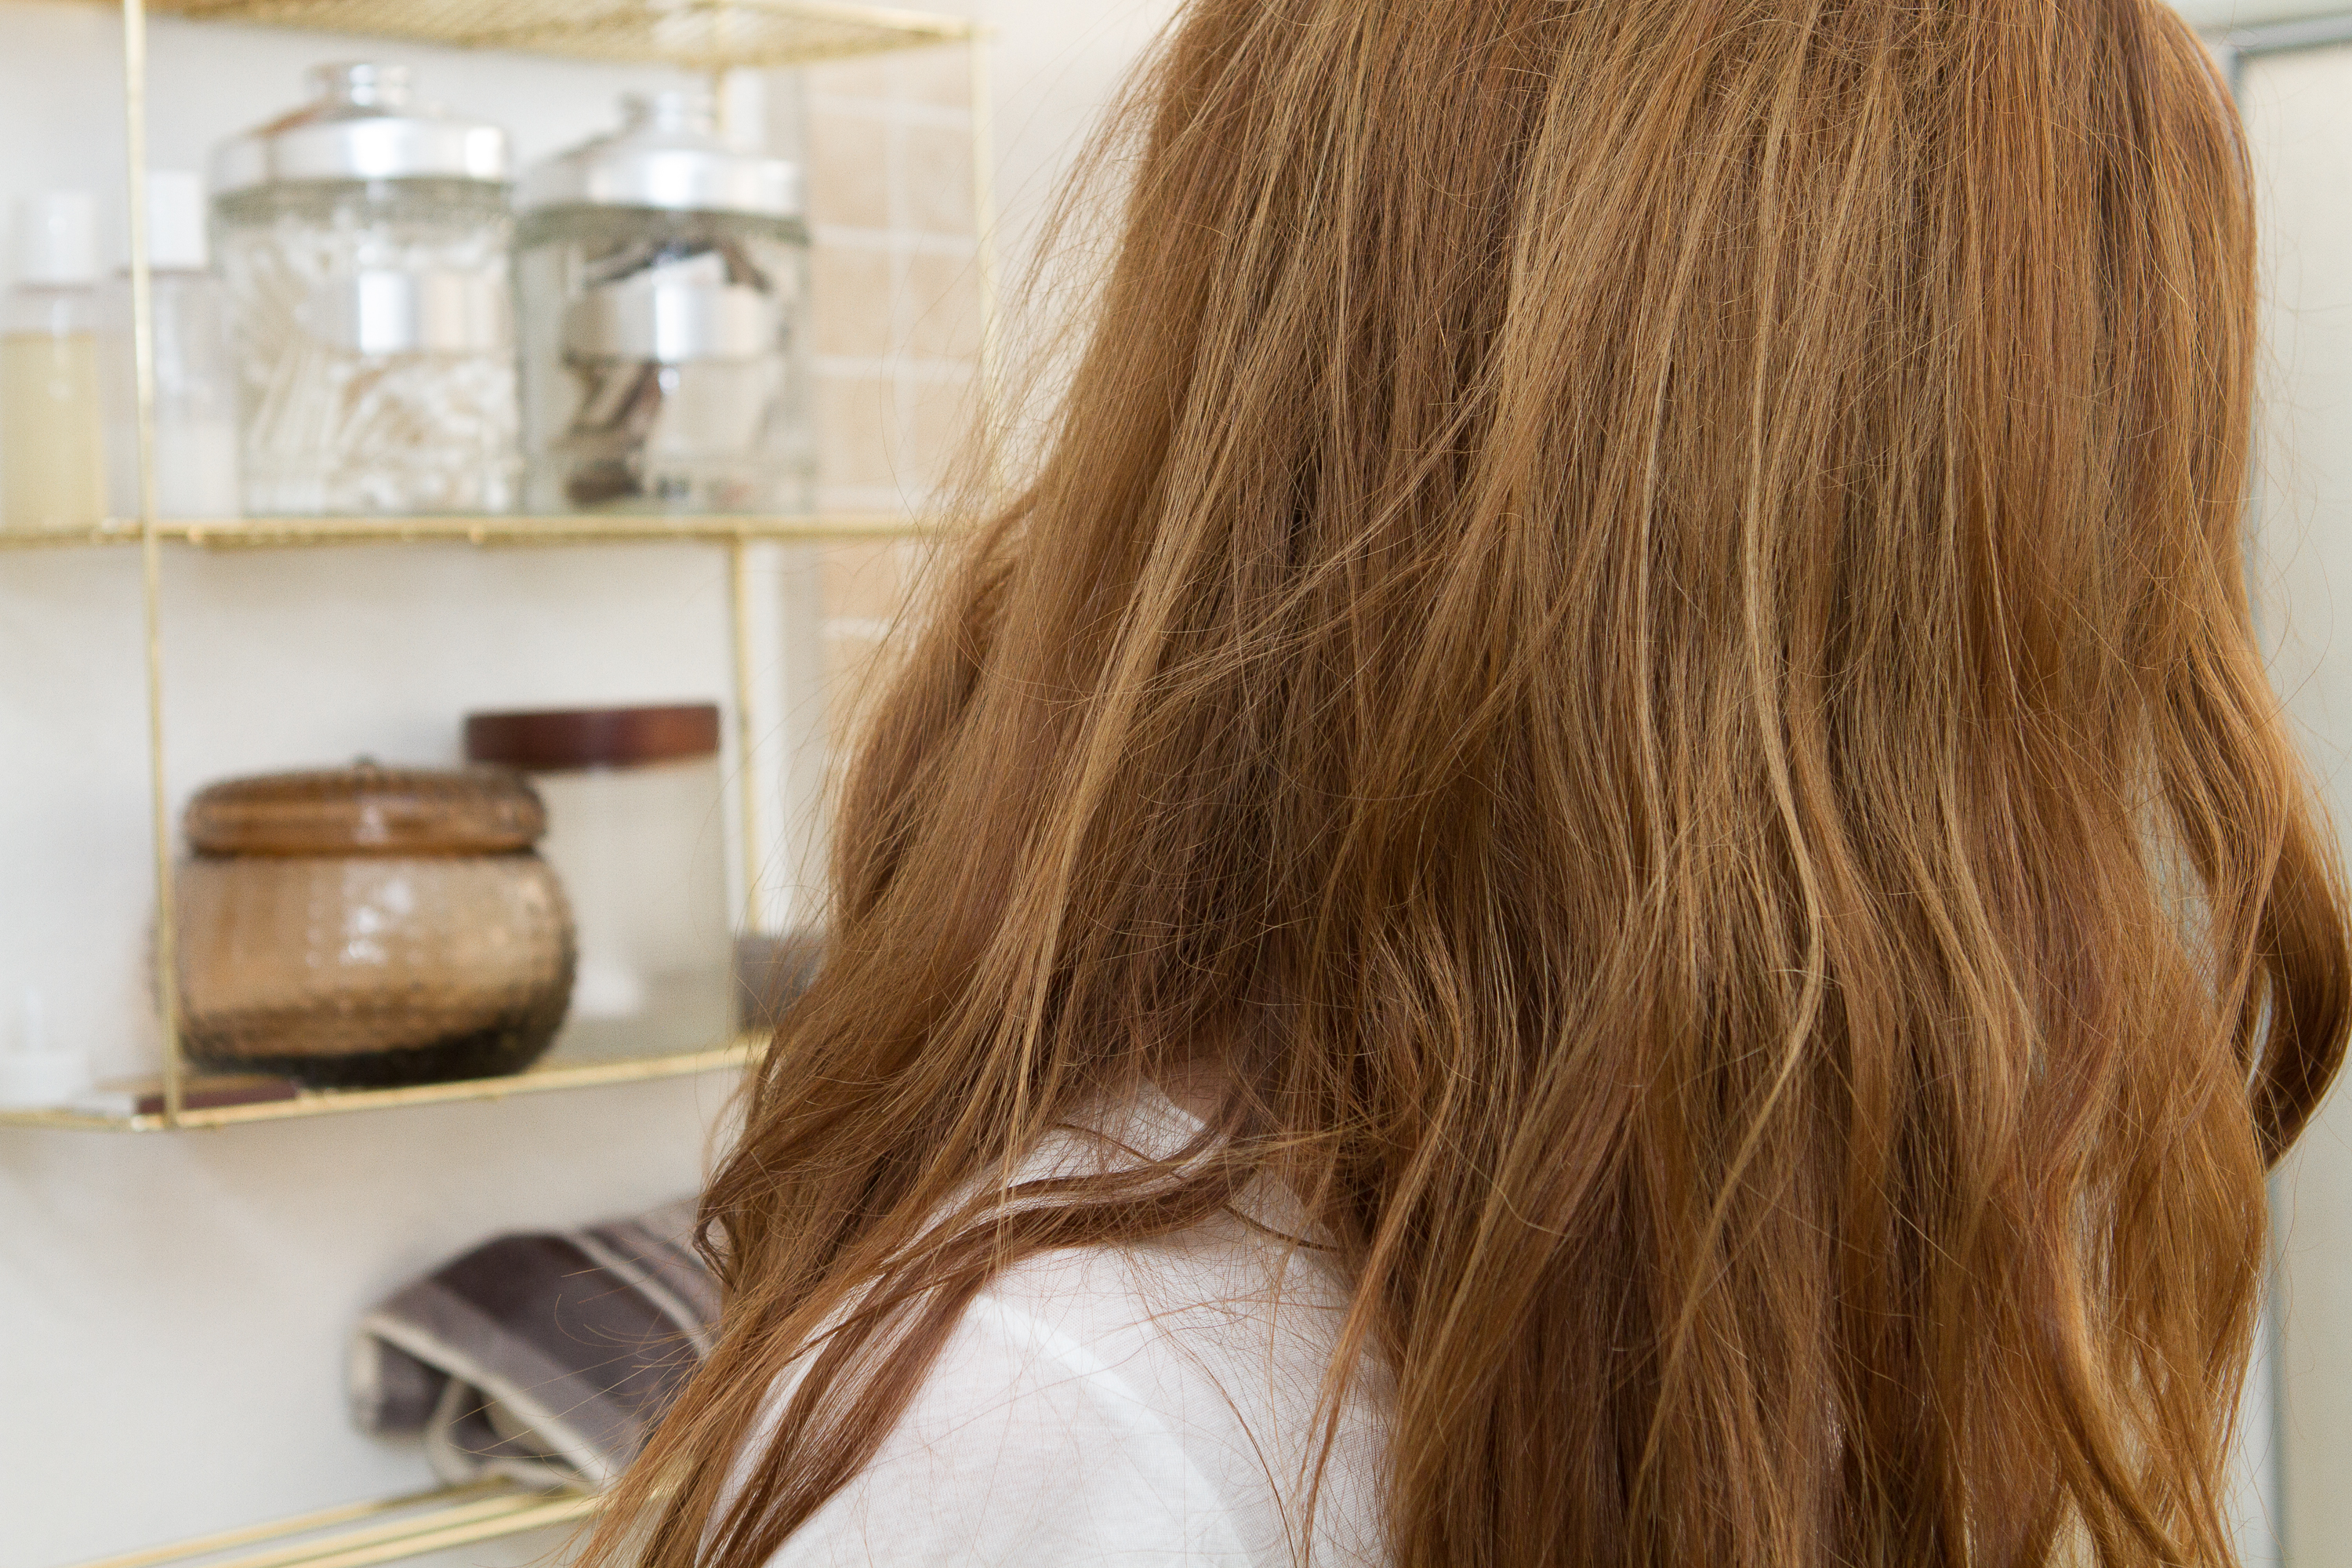 How To Get Iron Buildup Out Of Hair Livestrong